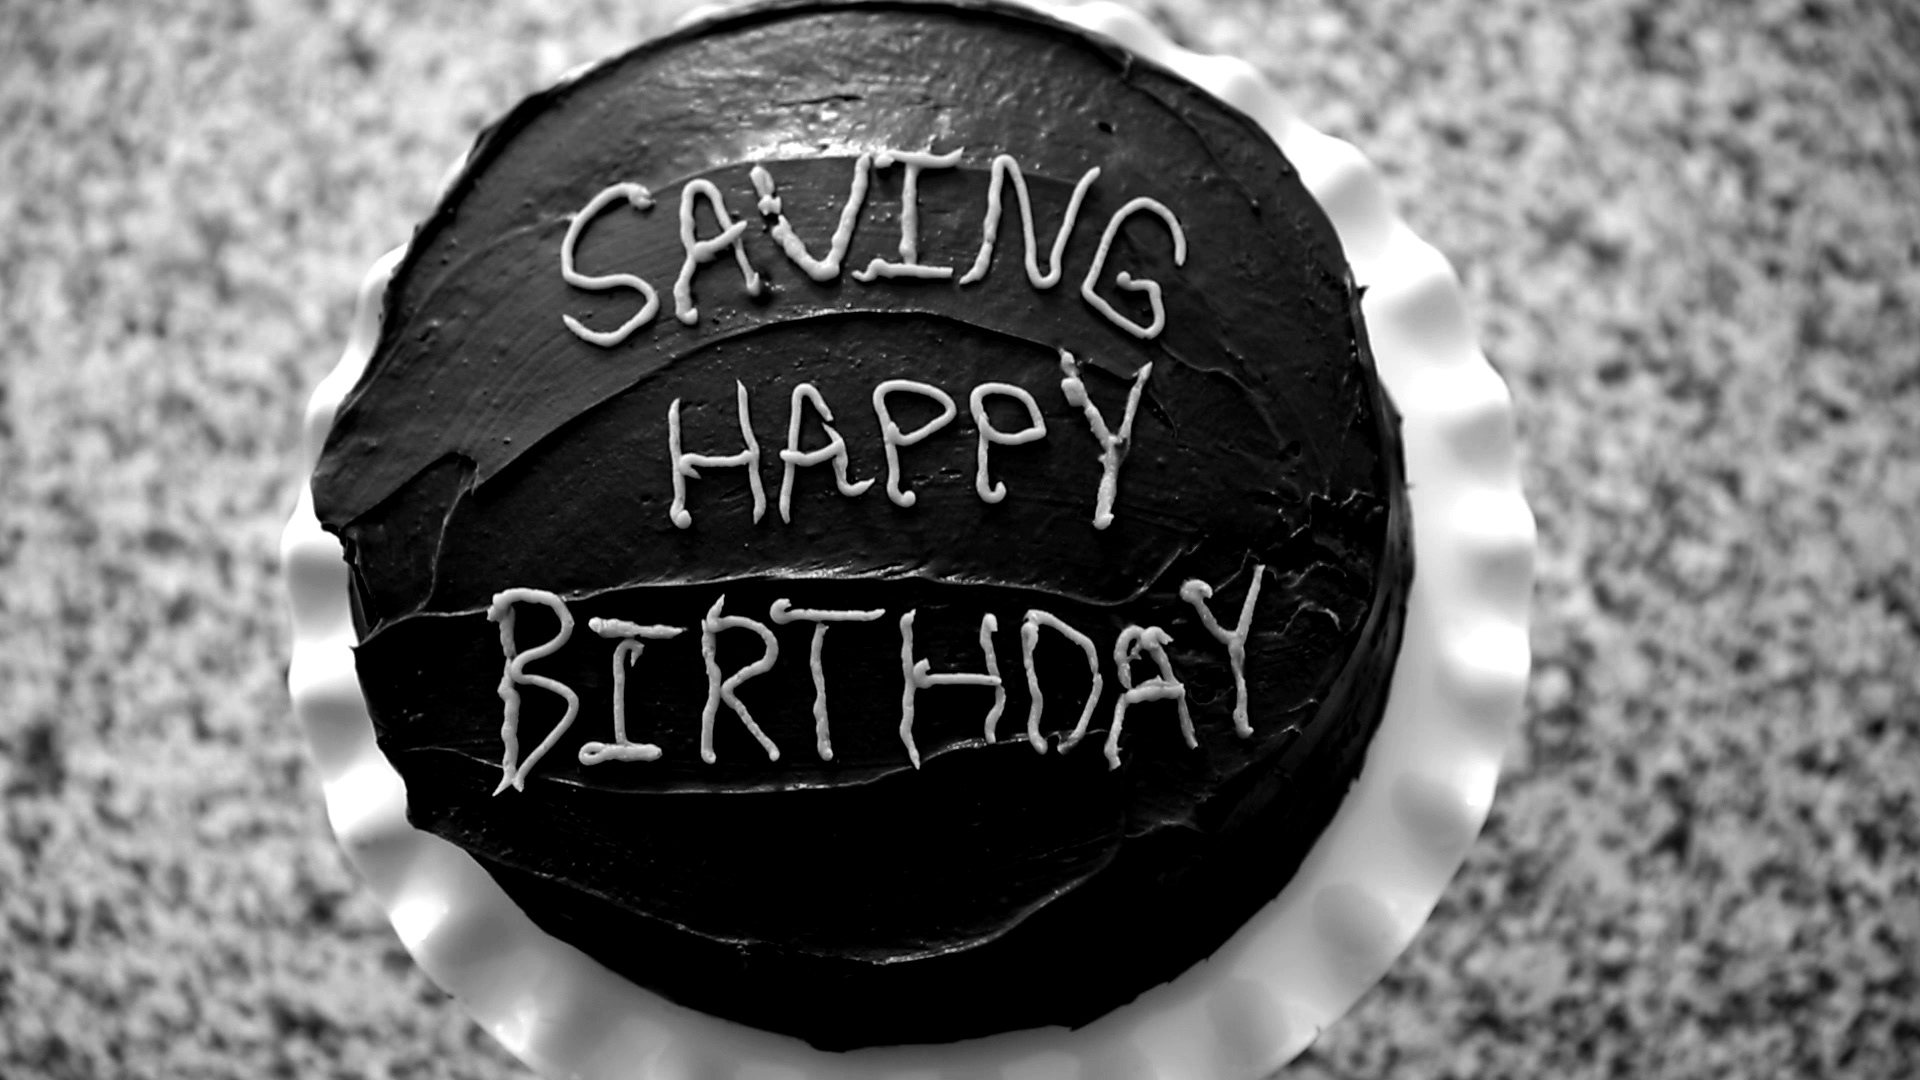 Saving Happy Birthday